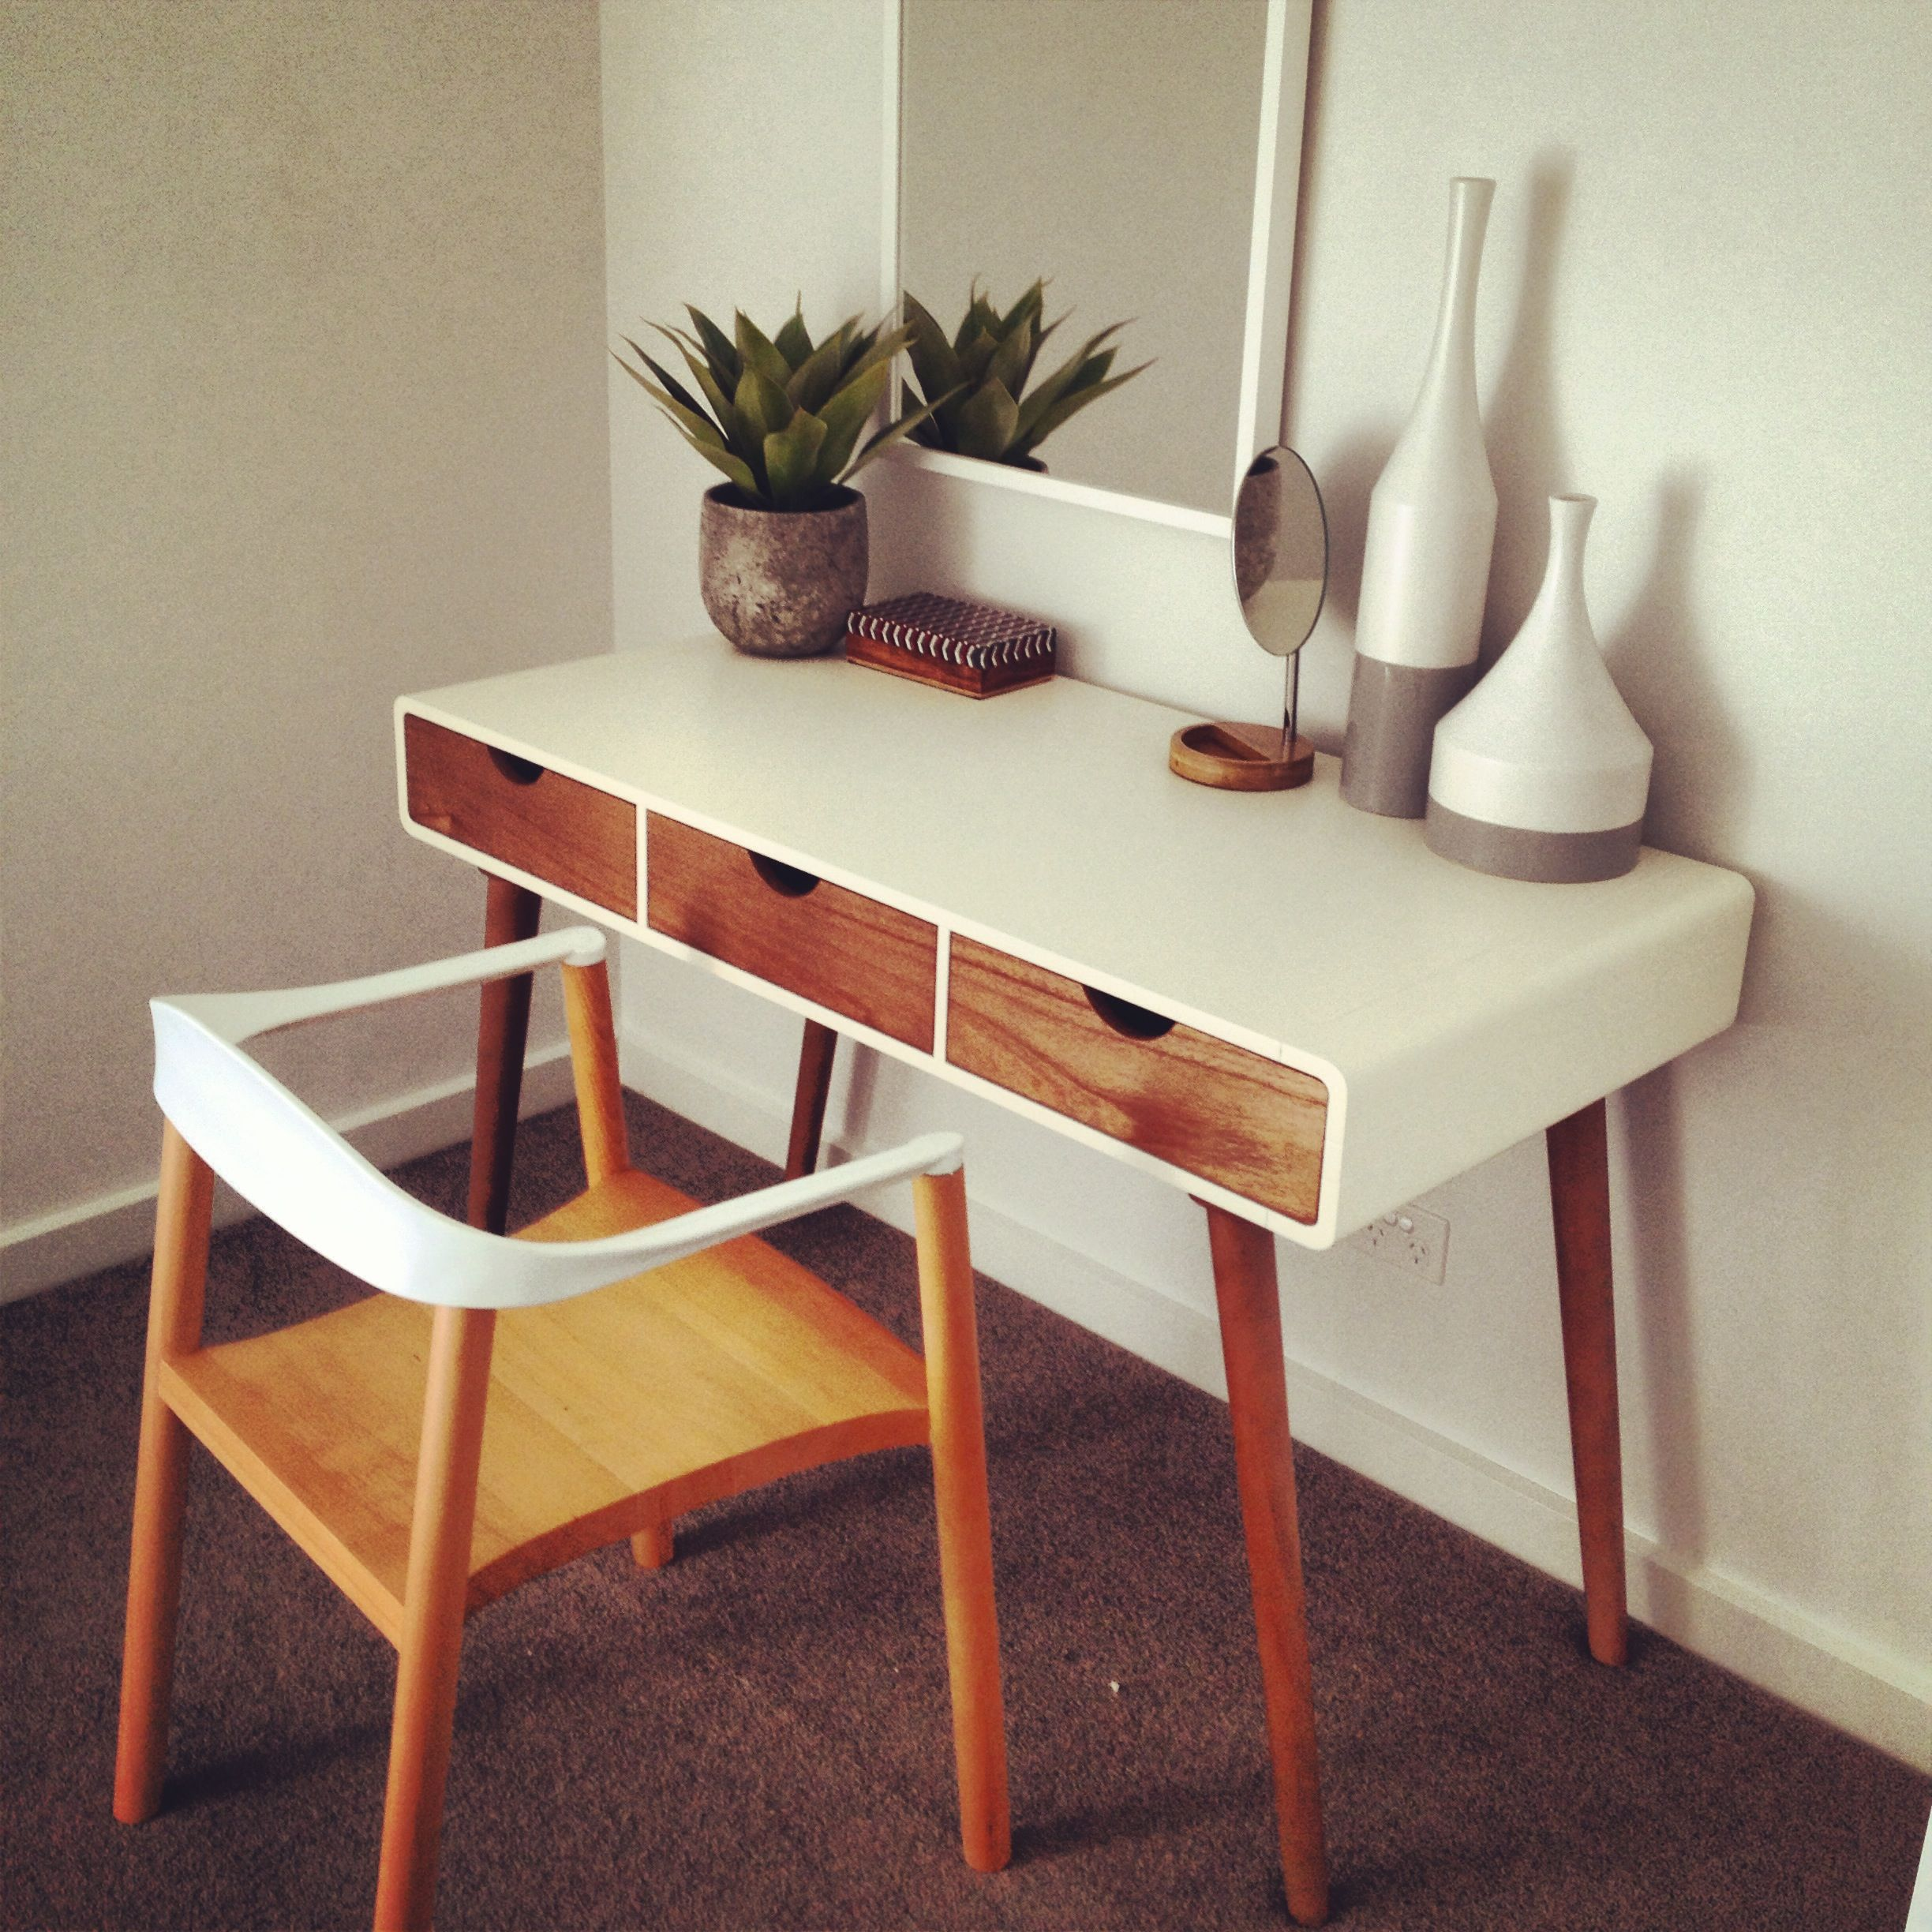 contemporary mid century furniture. Furniture:Interesting Design For Modern Stylish White Wooden Dressing Table With Nice Chair Mid-Century And Colorful Tables . Contemporary Mid Century Furniture